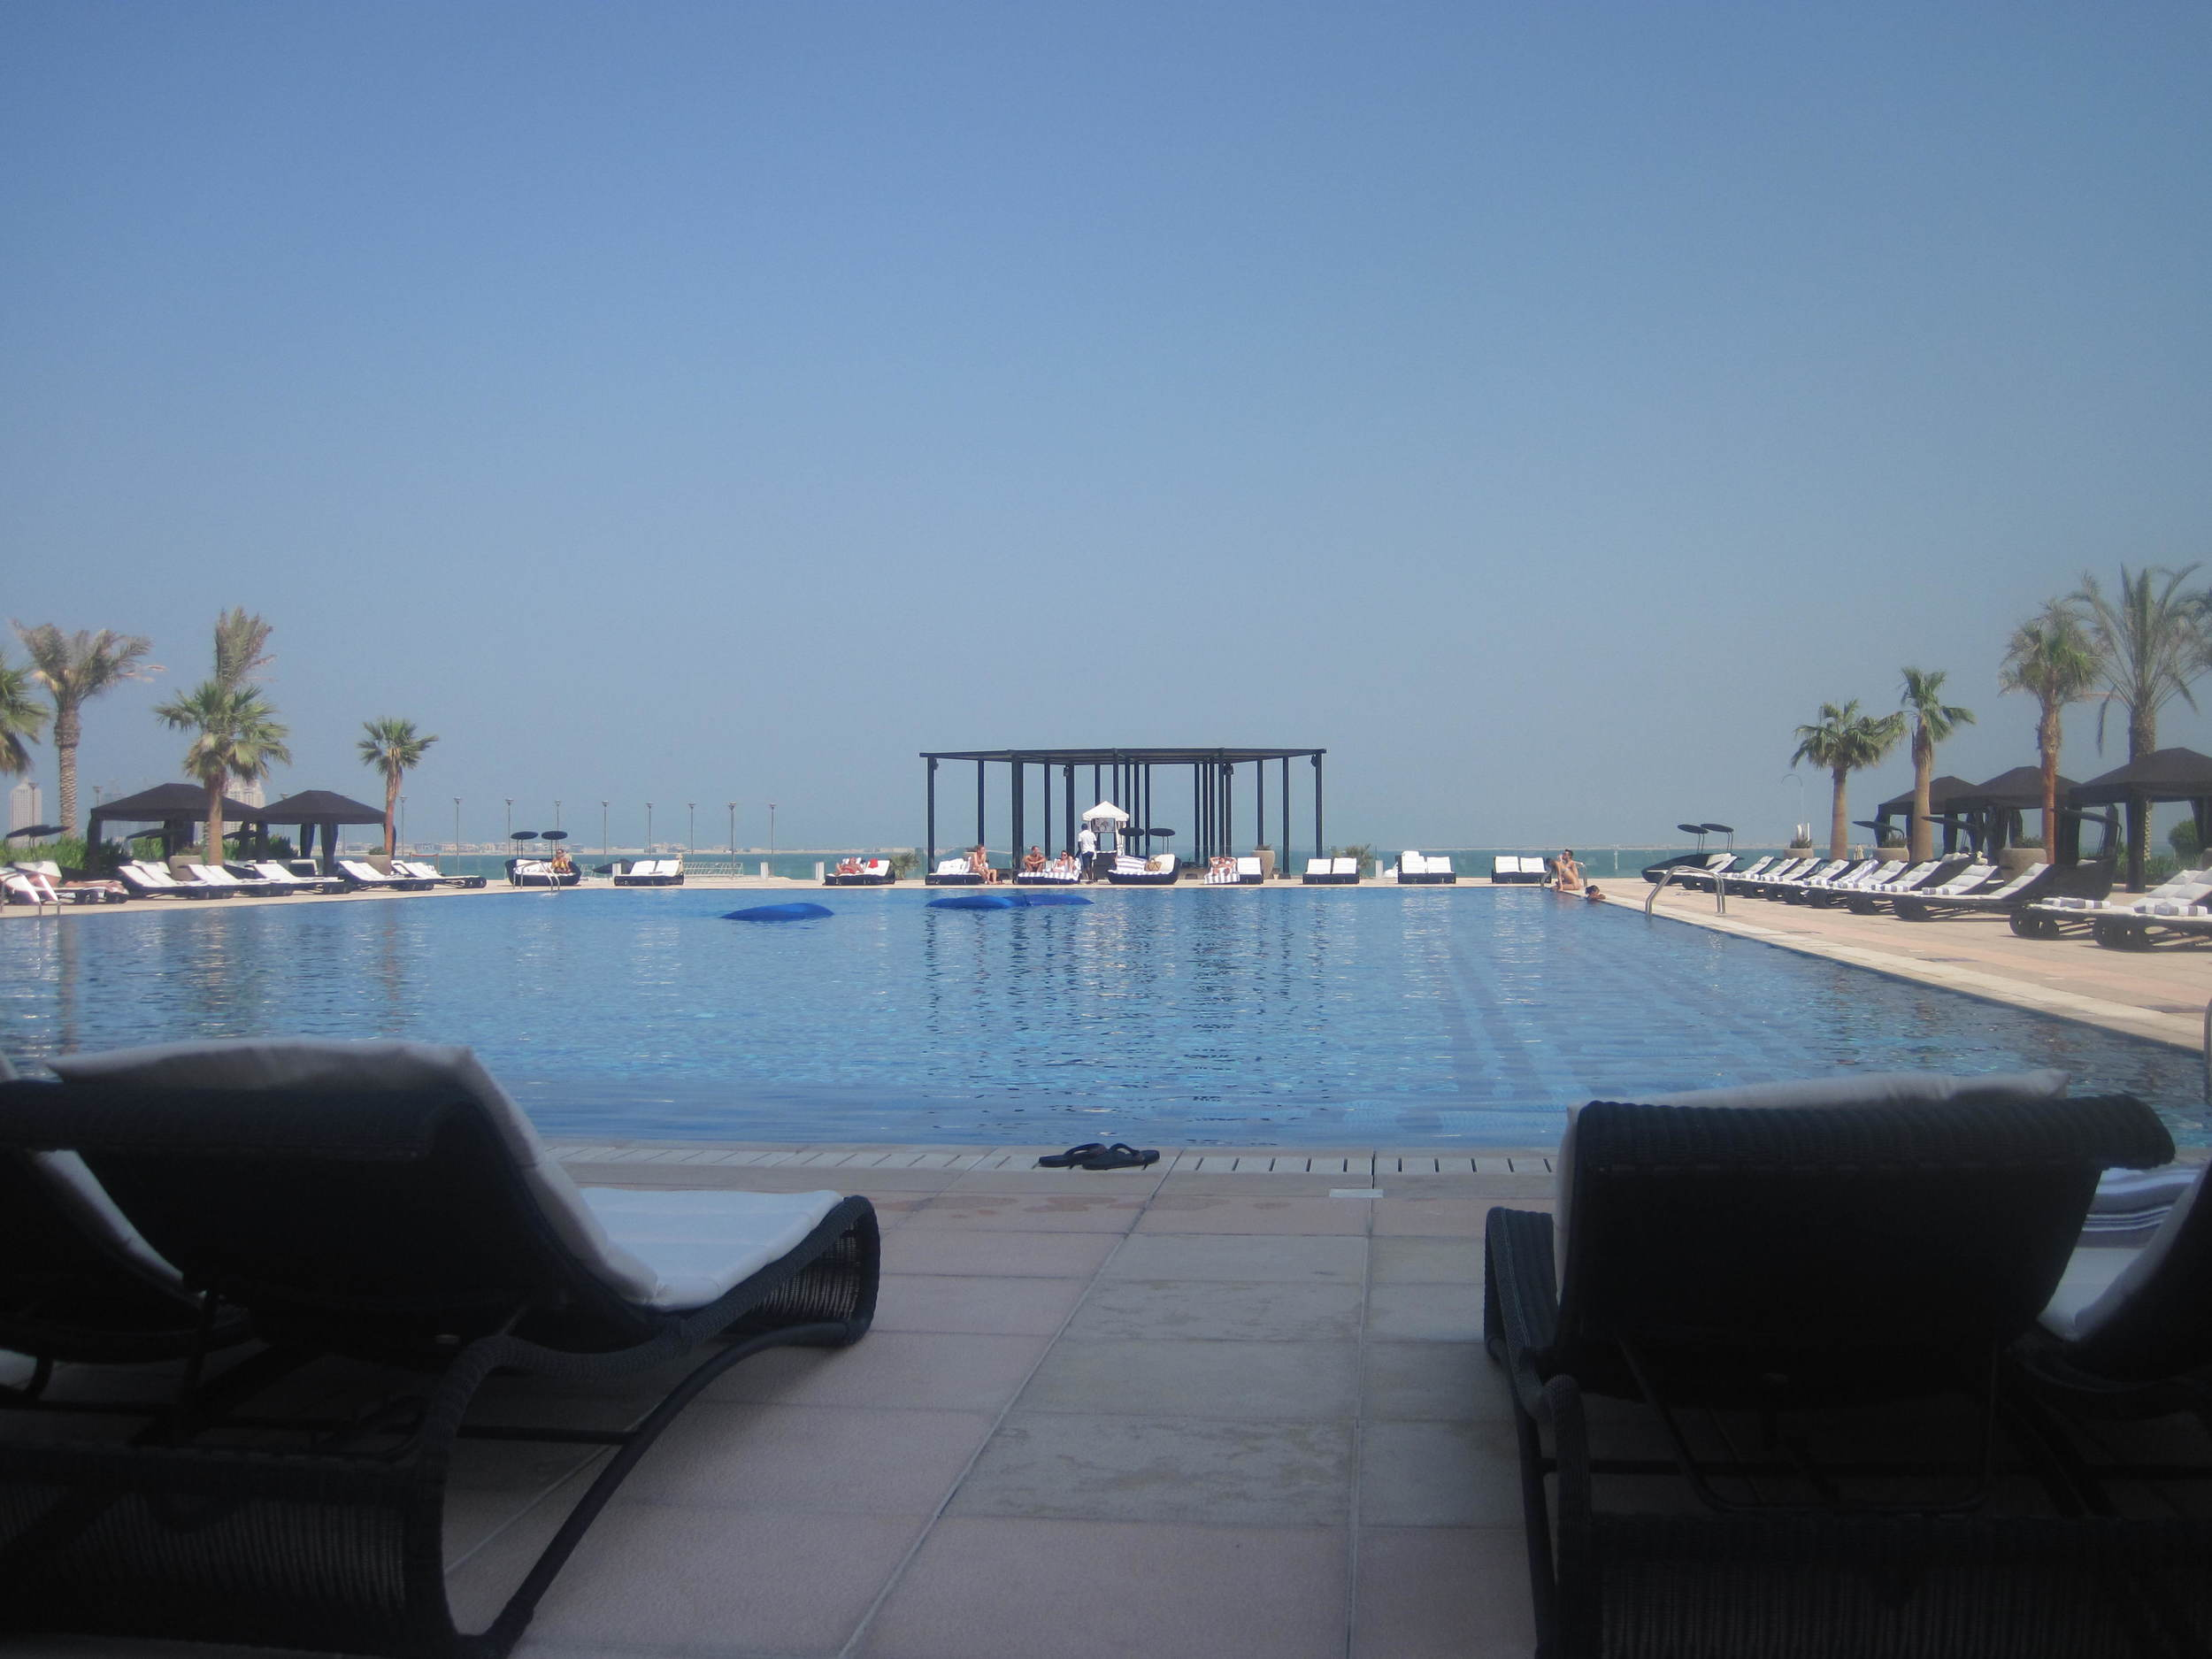 Chillaxin' by the pool at St. Regis Hotel, Doha